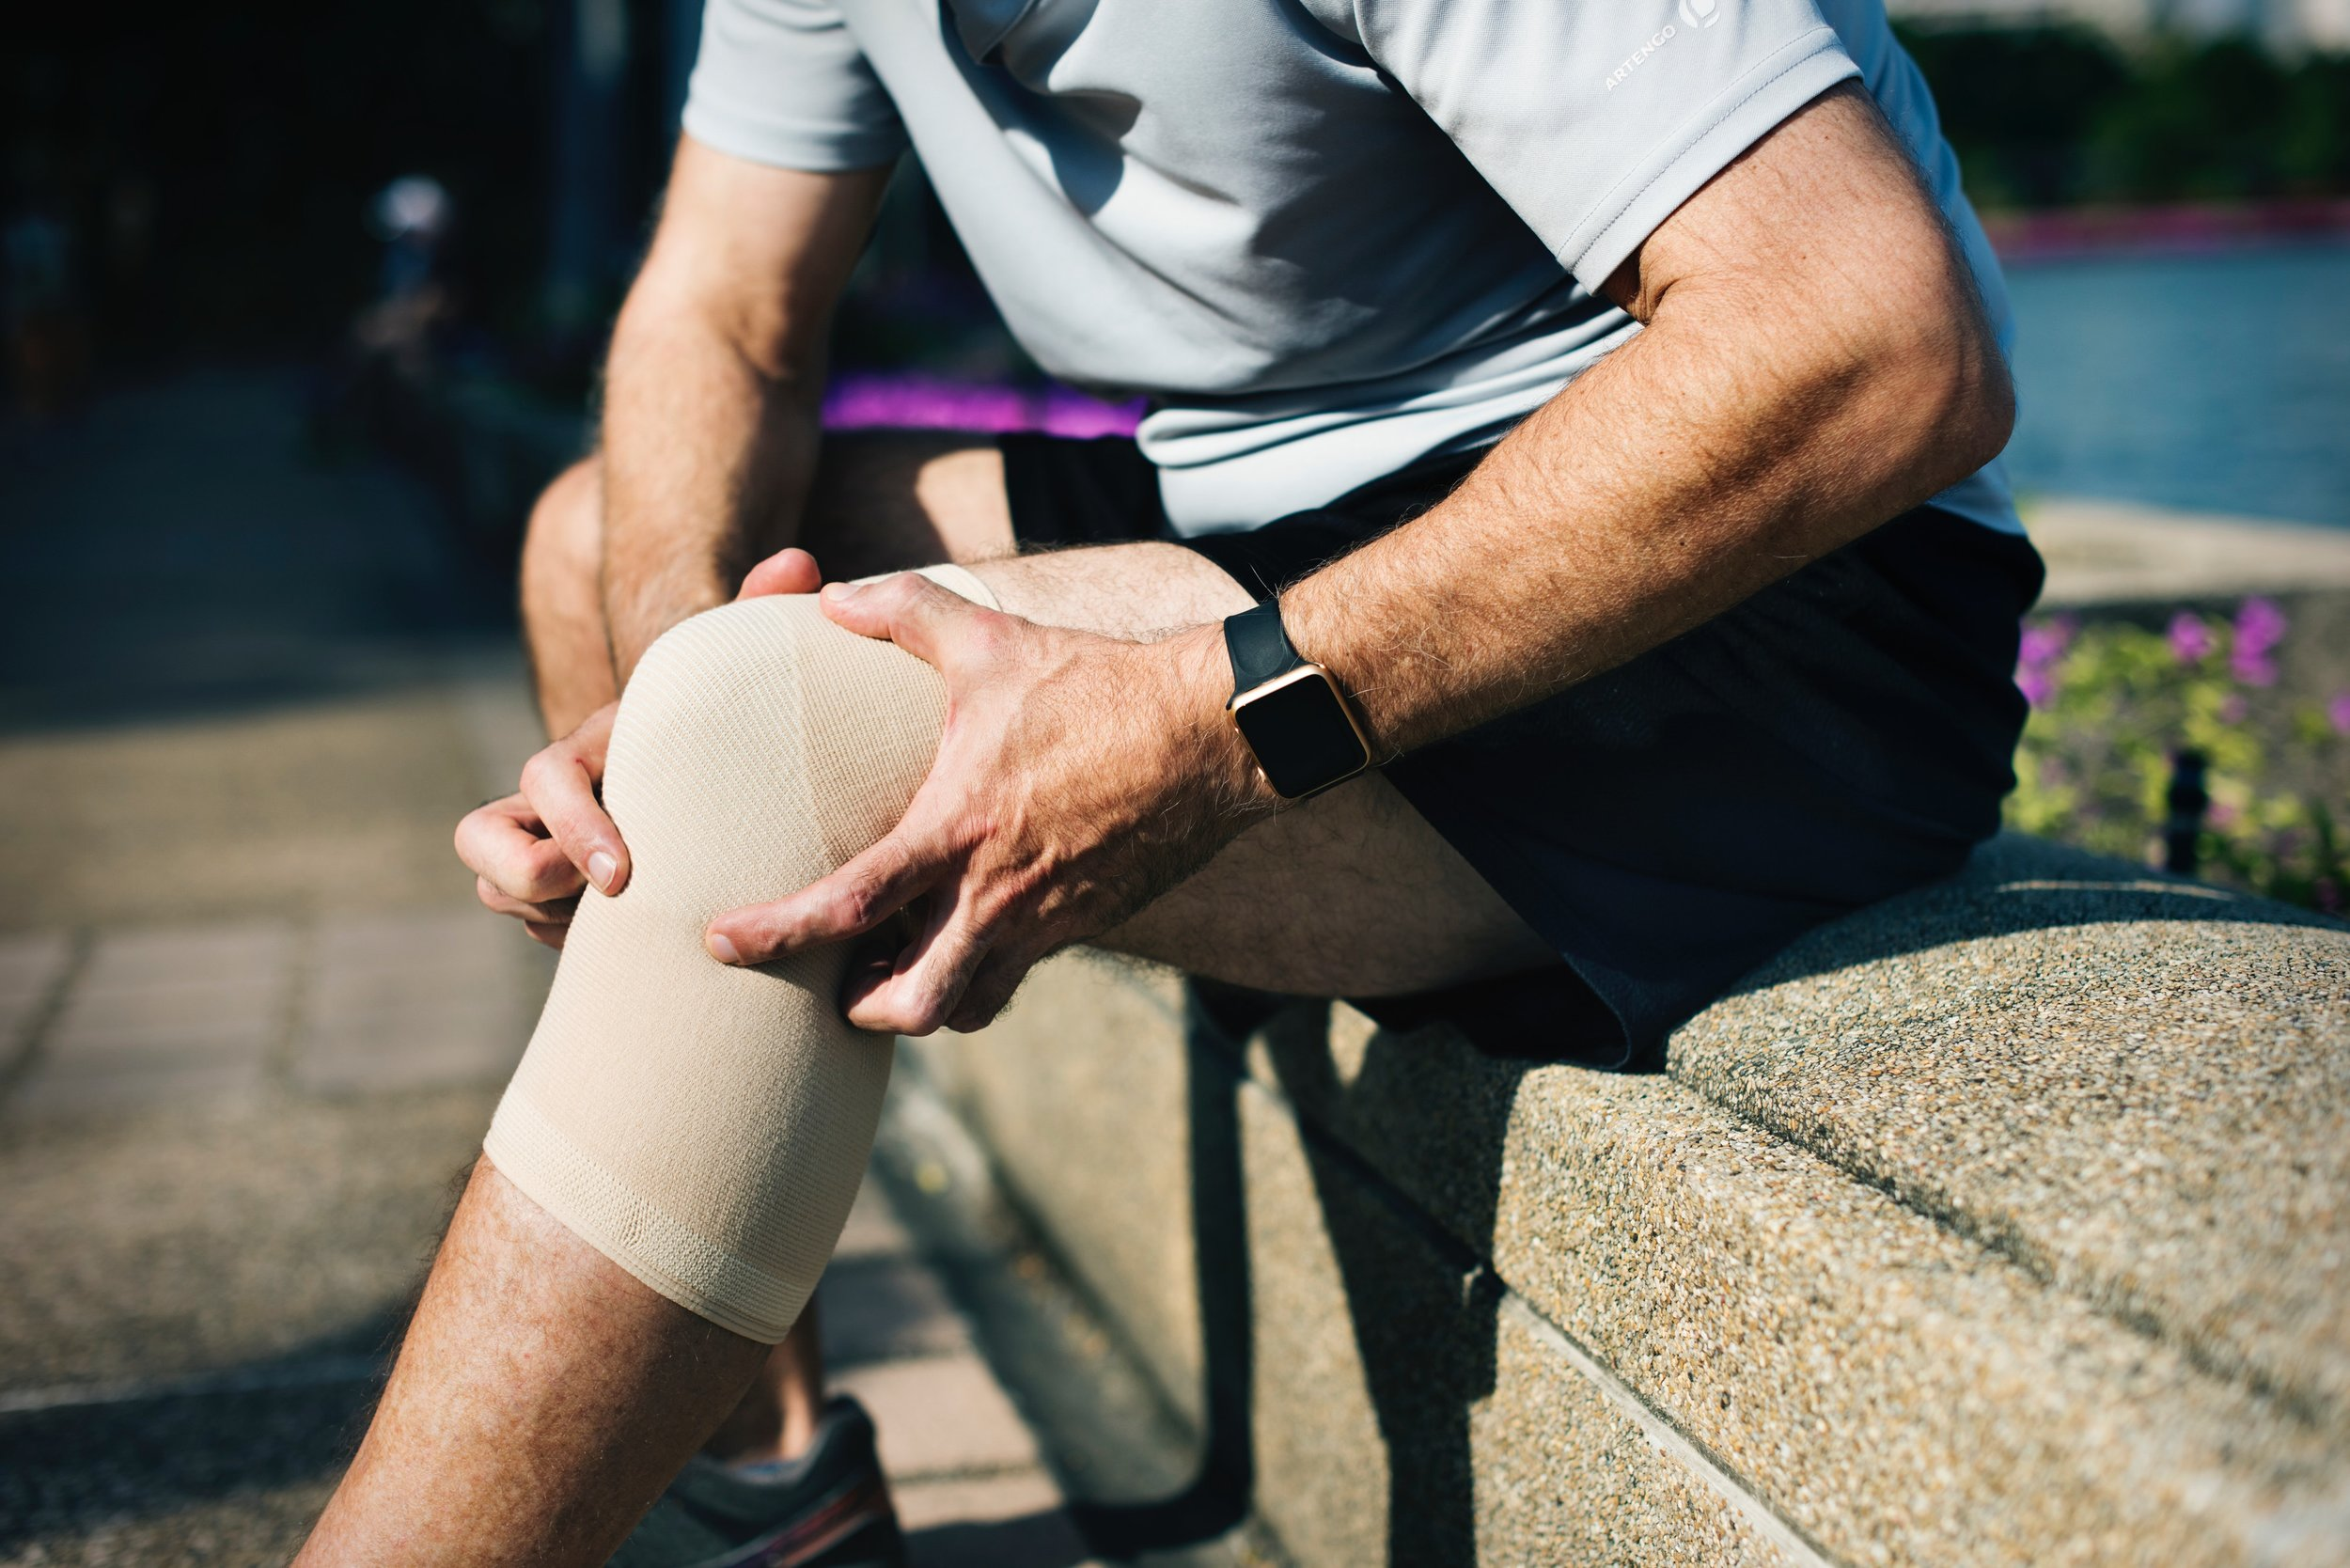 Sports Injury - We treat all types of sports injuries using non-operative treatments. If you need surgical options, we will refer you to the appropriate physician.Request Sports Injury Appointment